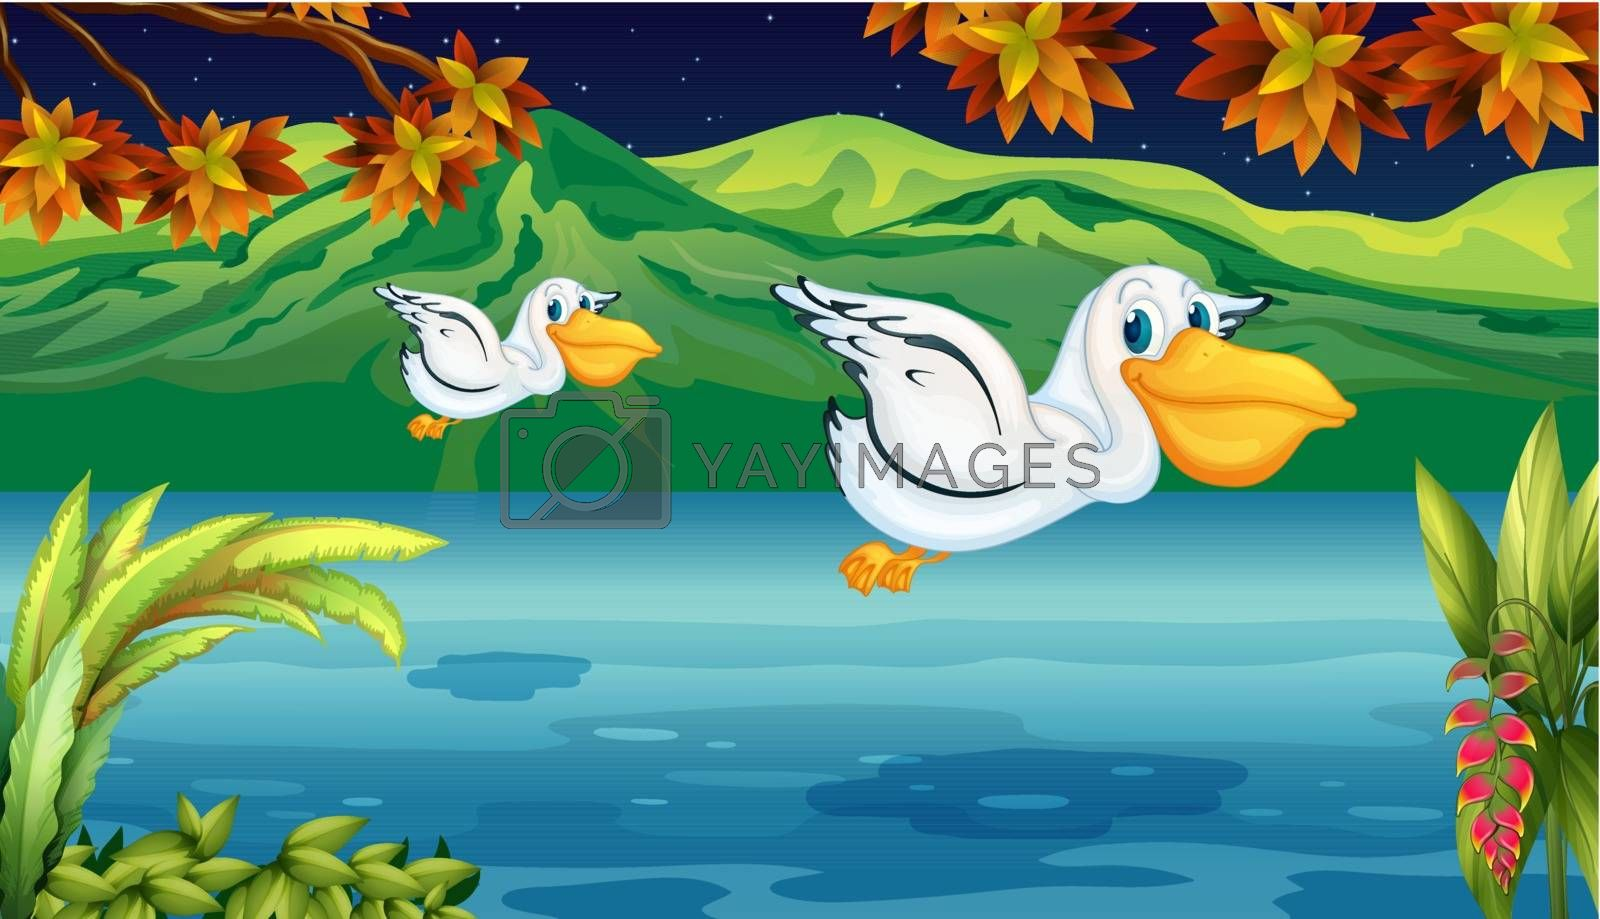 Illustration of two flying animals at the river